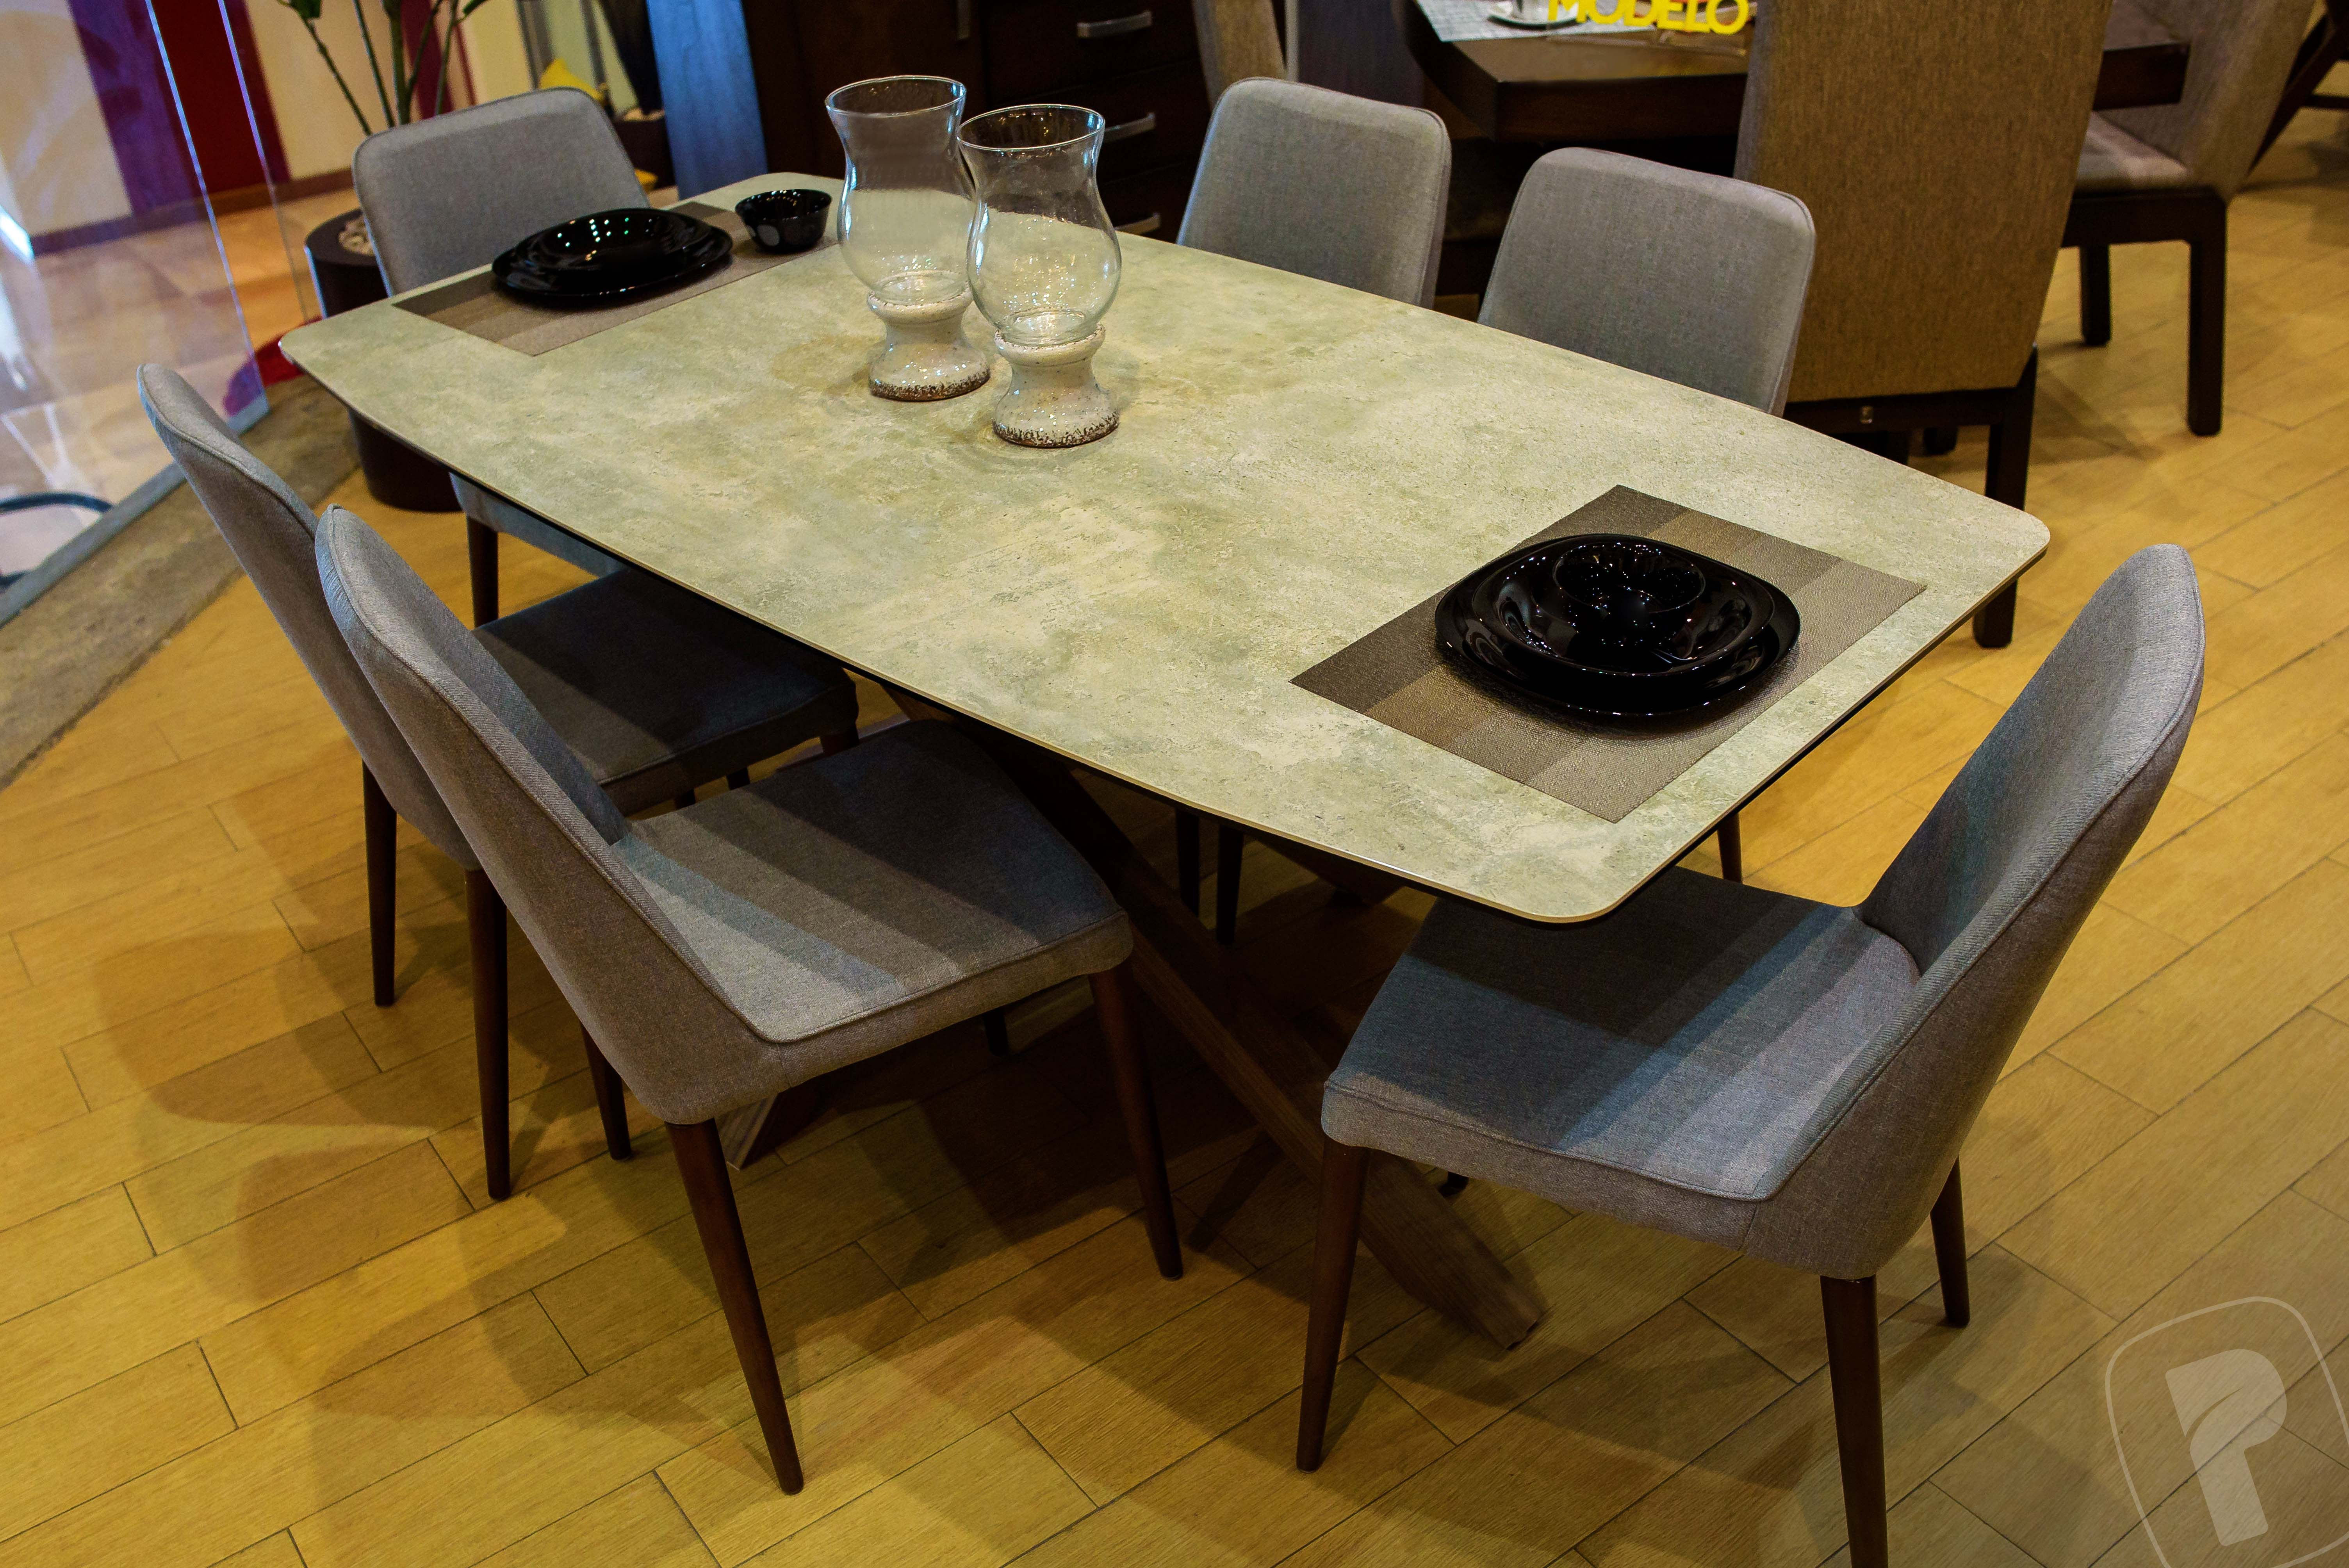 Coprisedie Thonet ~ Mesa cer wlan dining 67446 y silla dining chair 67447 comedores